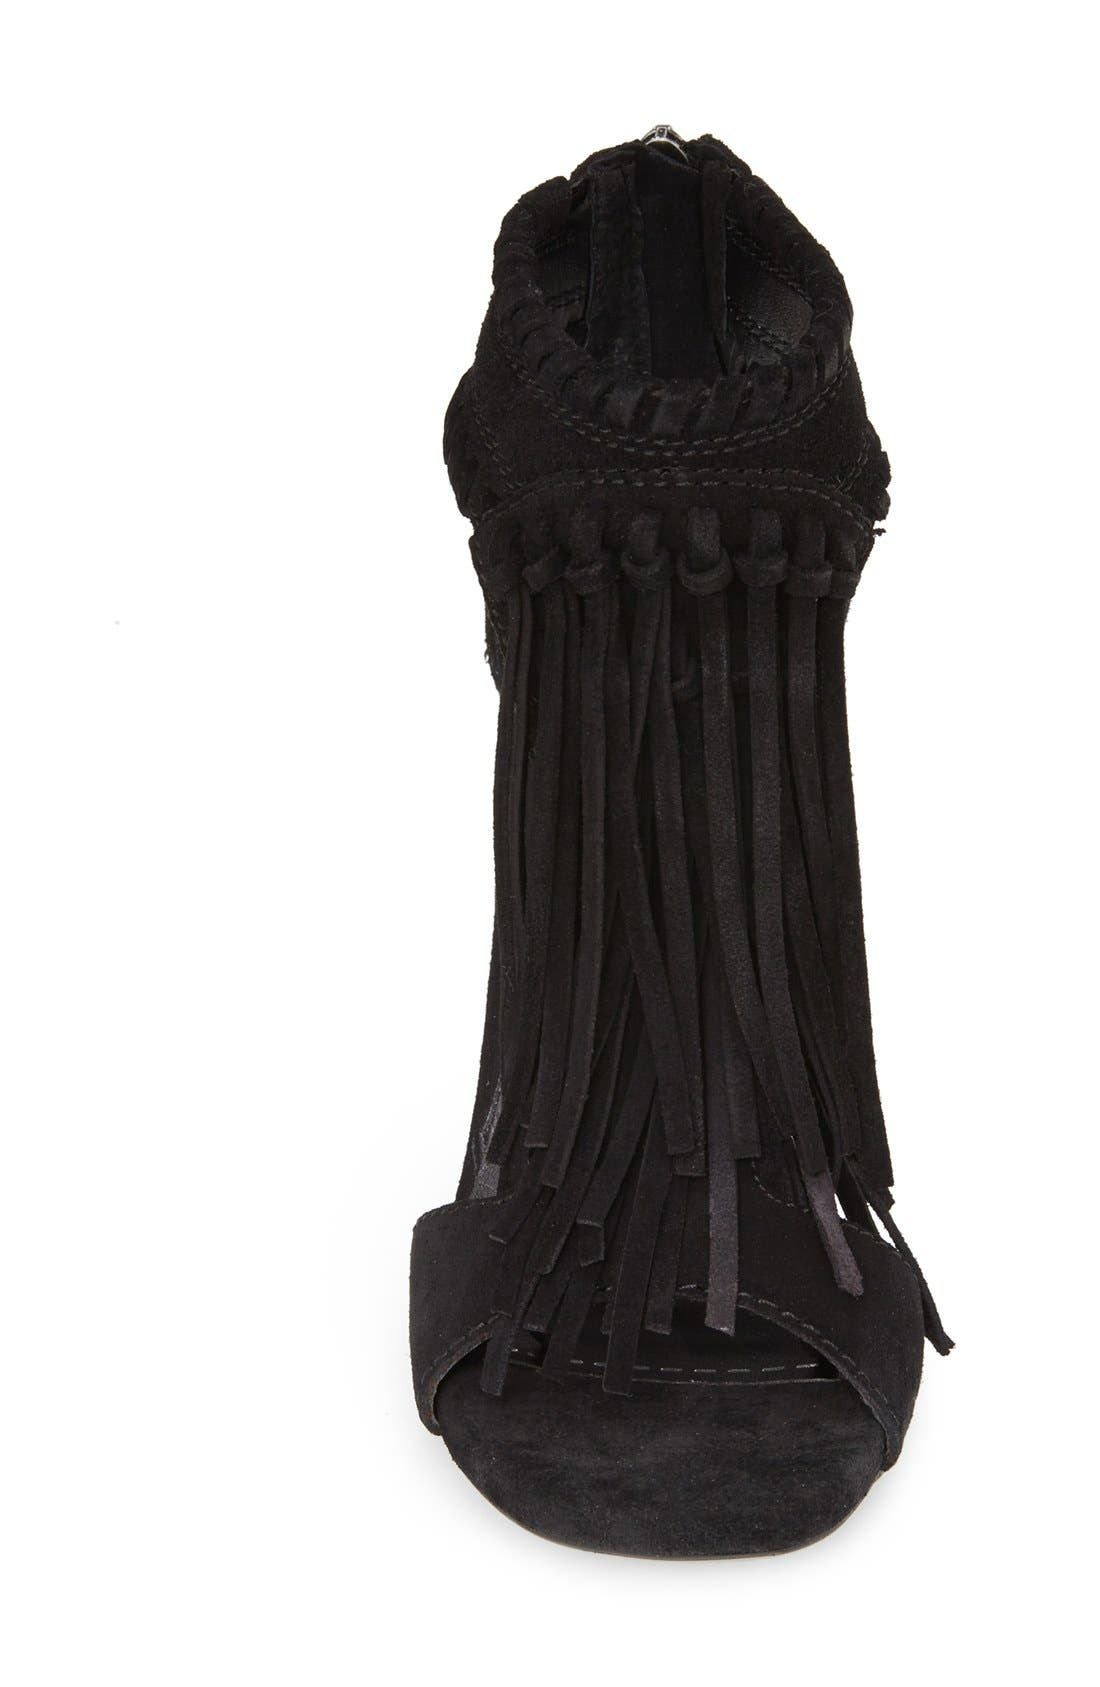 Alternate Image 3  - Chinese Laundry 'Santa Fe' Suede Fringe Sandal (Women)